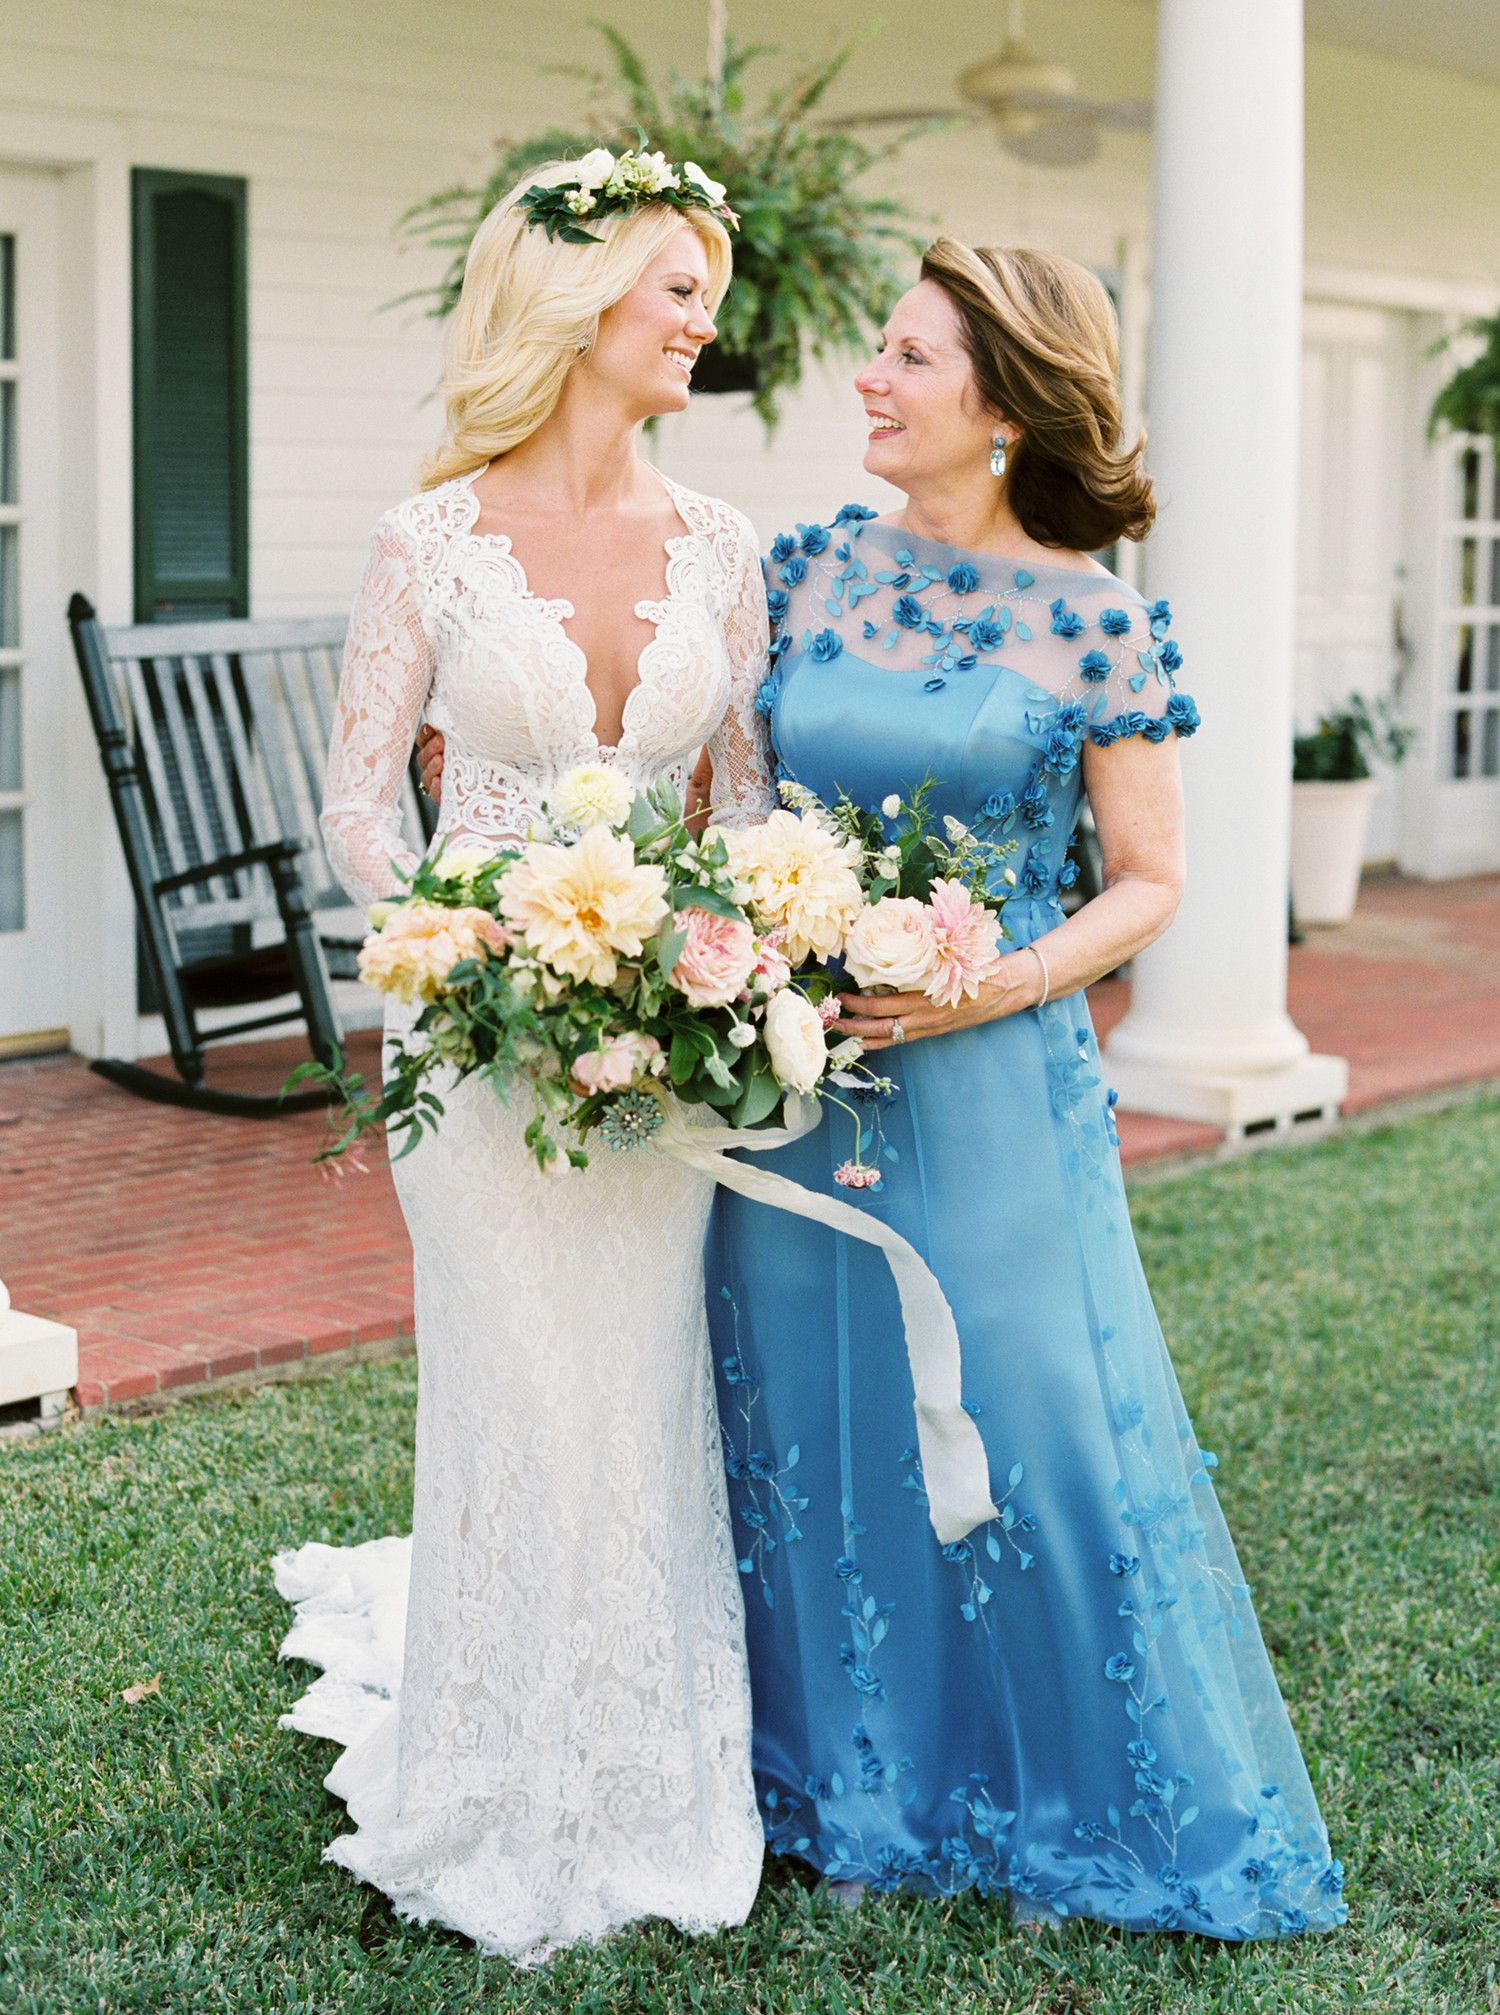 Mother-of-the-Bride Dresses That Wowed at Weddings | Wedding stuff ...